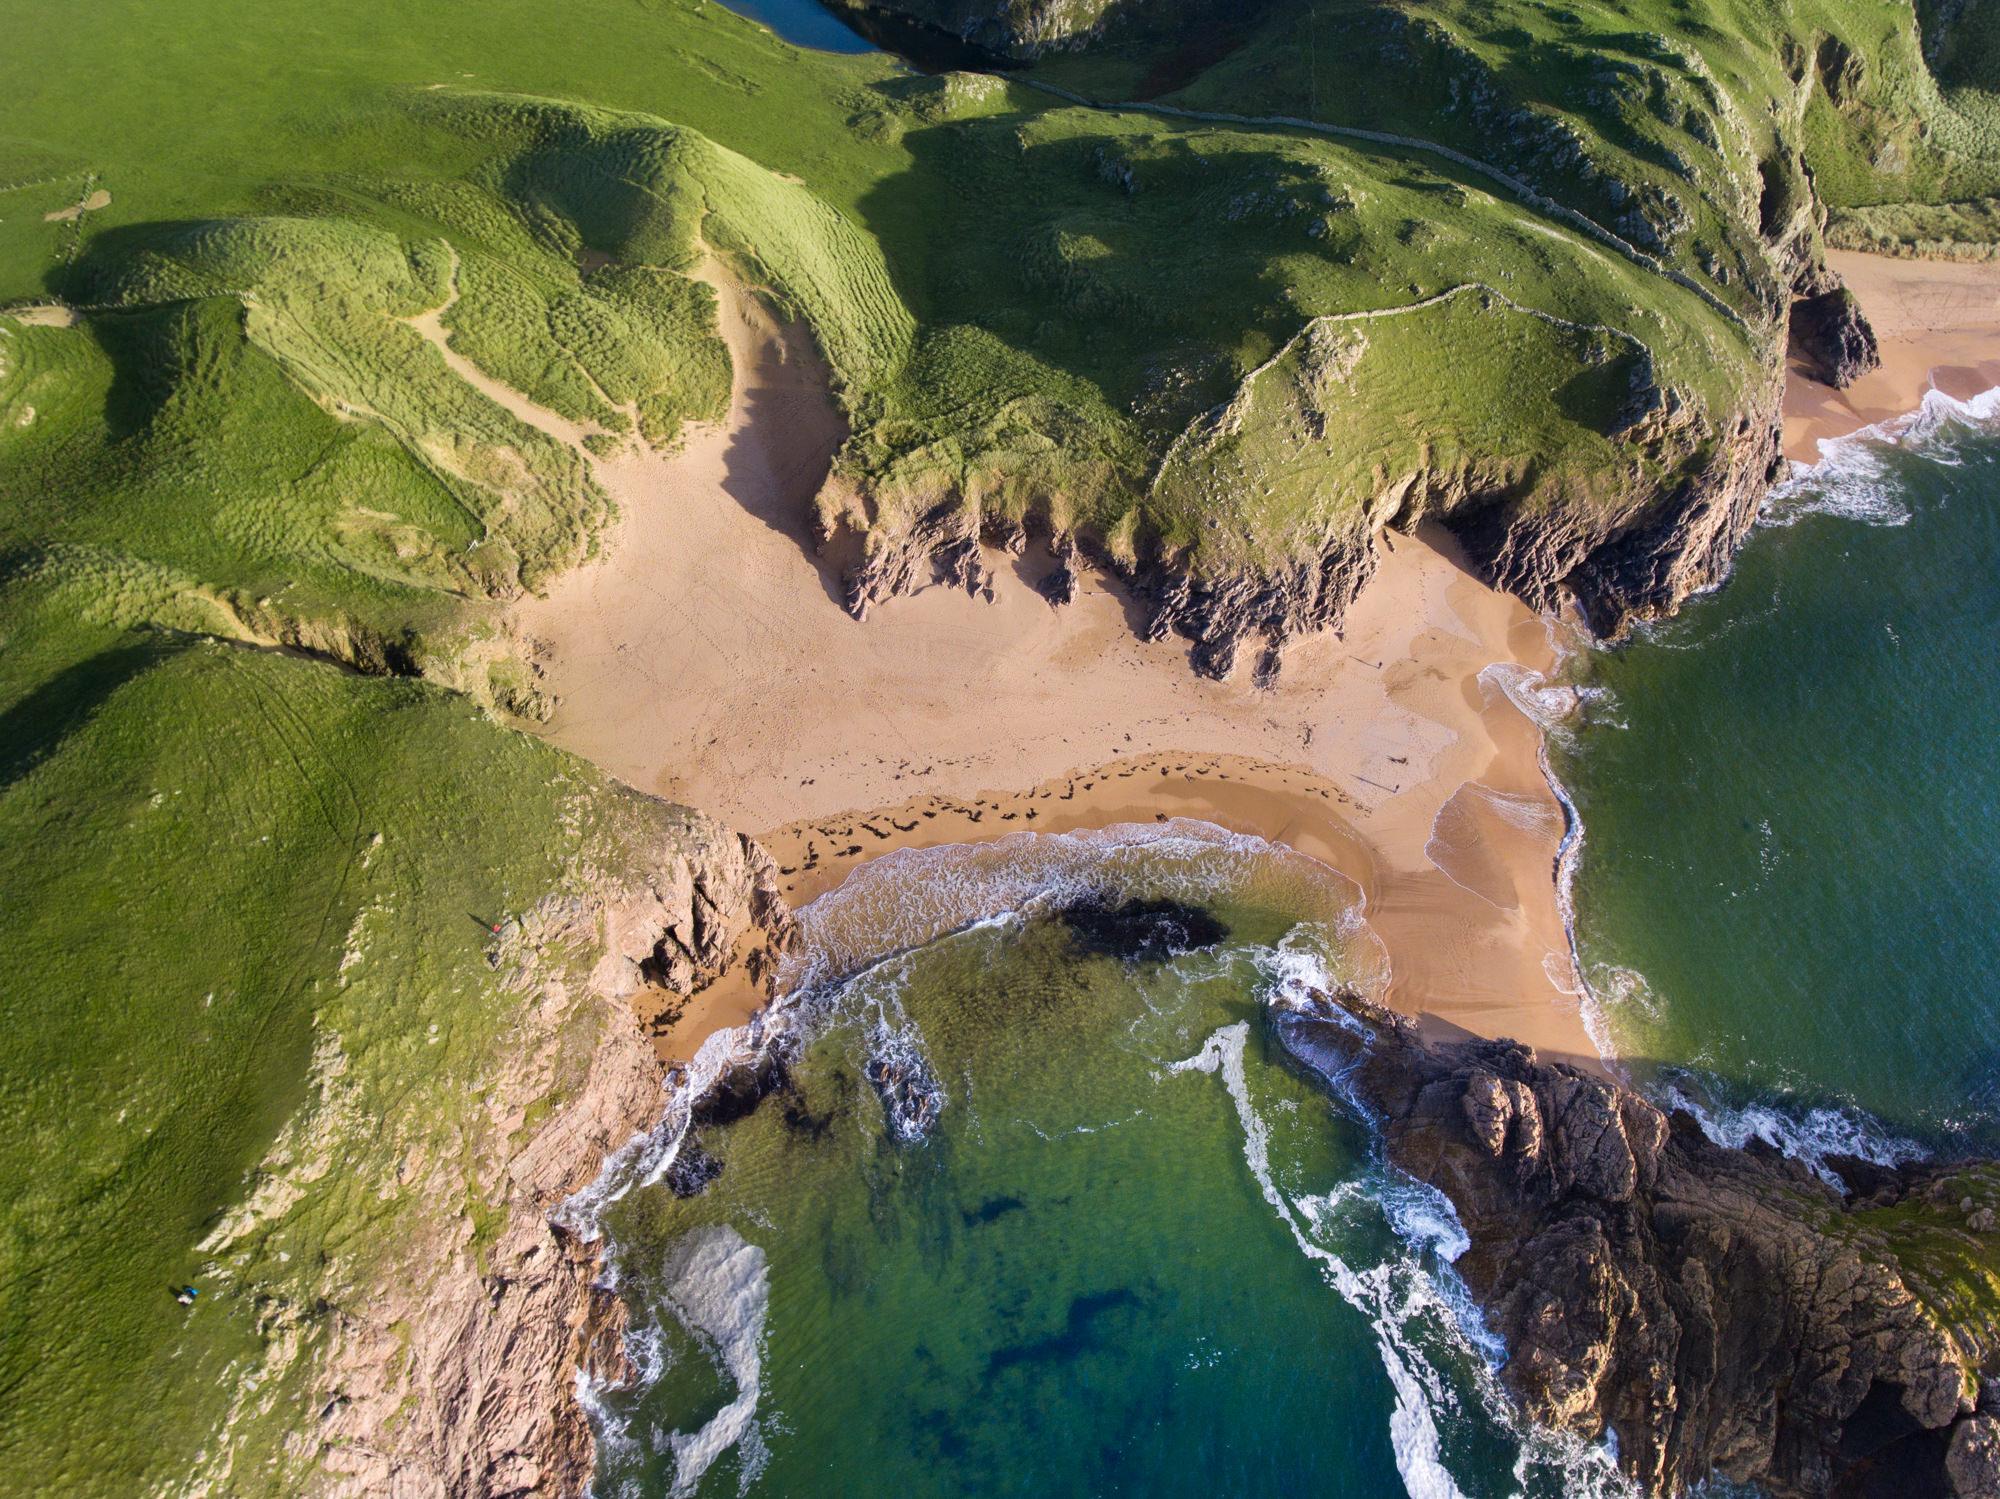 Aerial image of Murder Hole Cove beach in Ireland